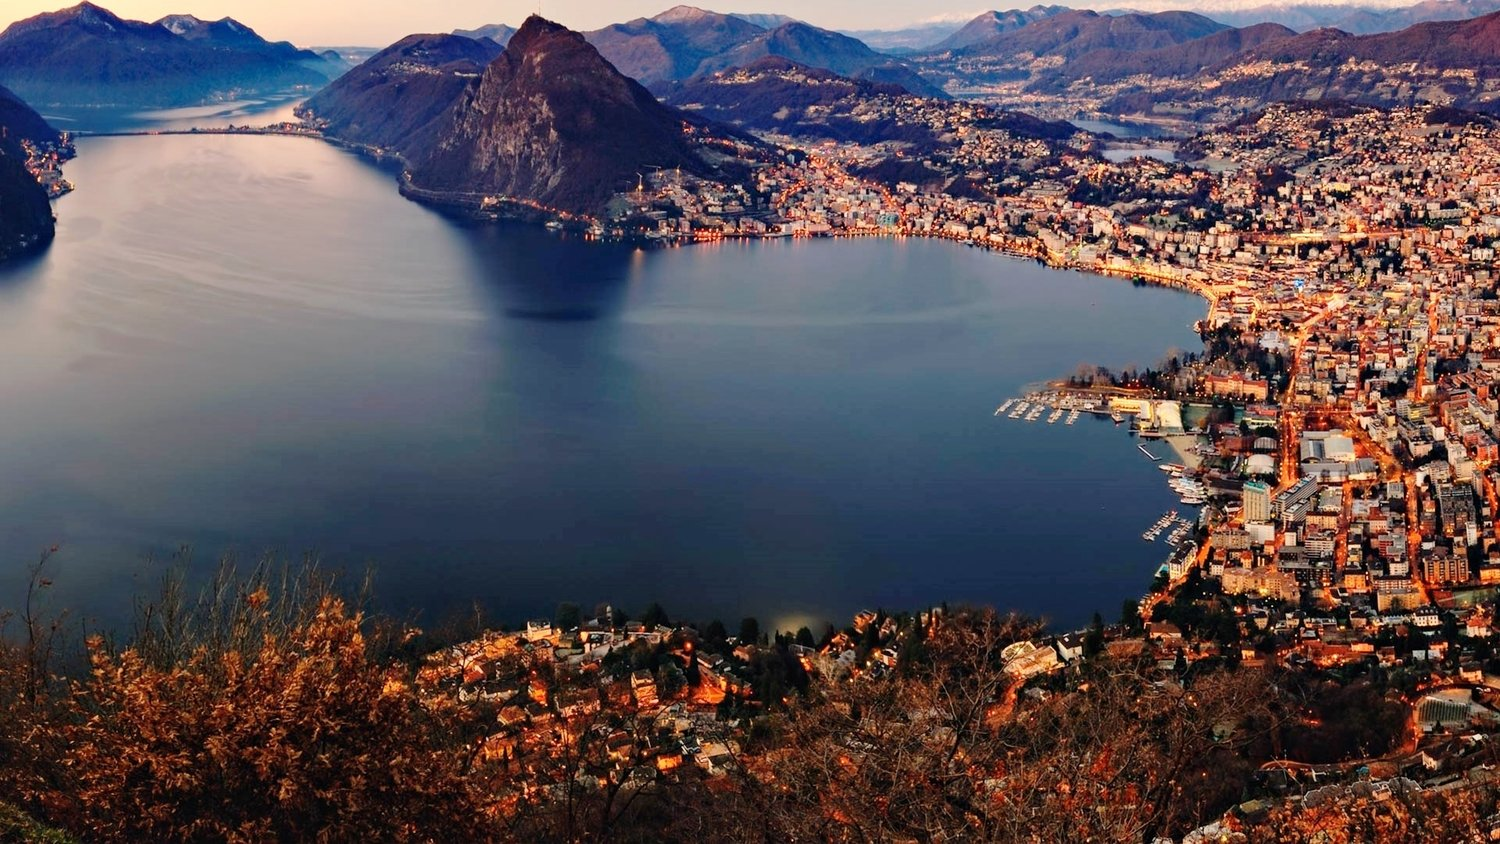 50a20dded5f DAM Microsurgery - On November 08th to 10th - Lugano (Switzerland) -  Fluoptics